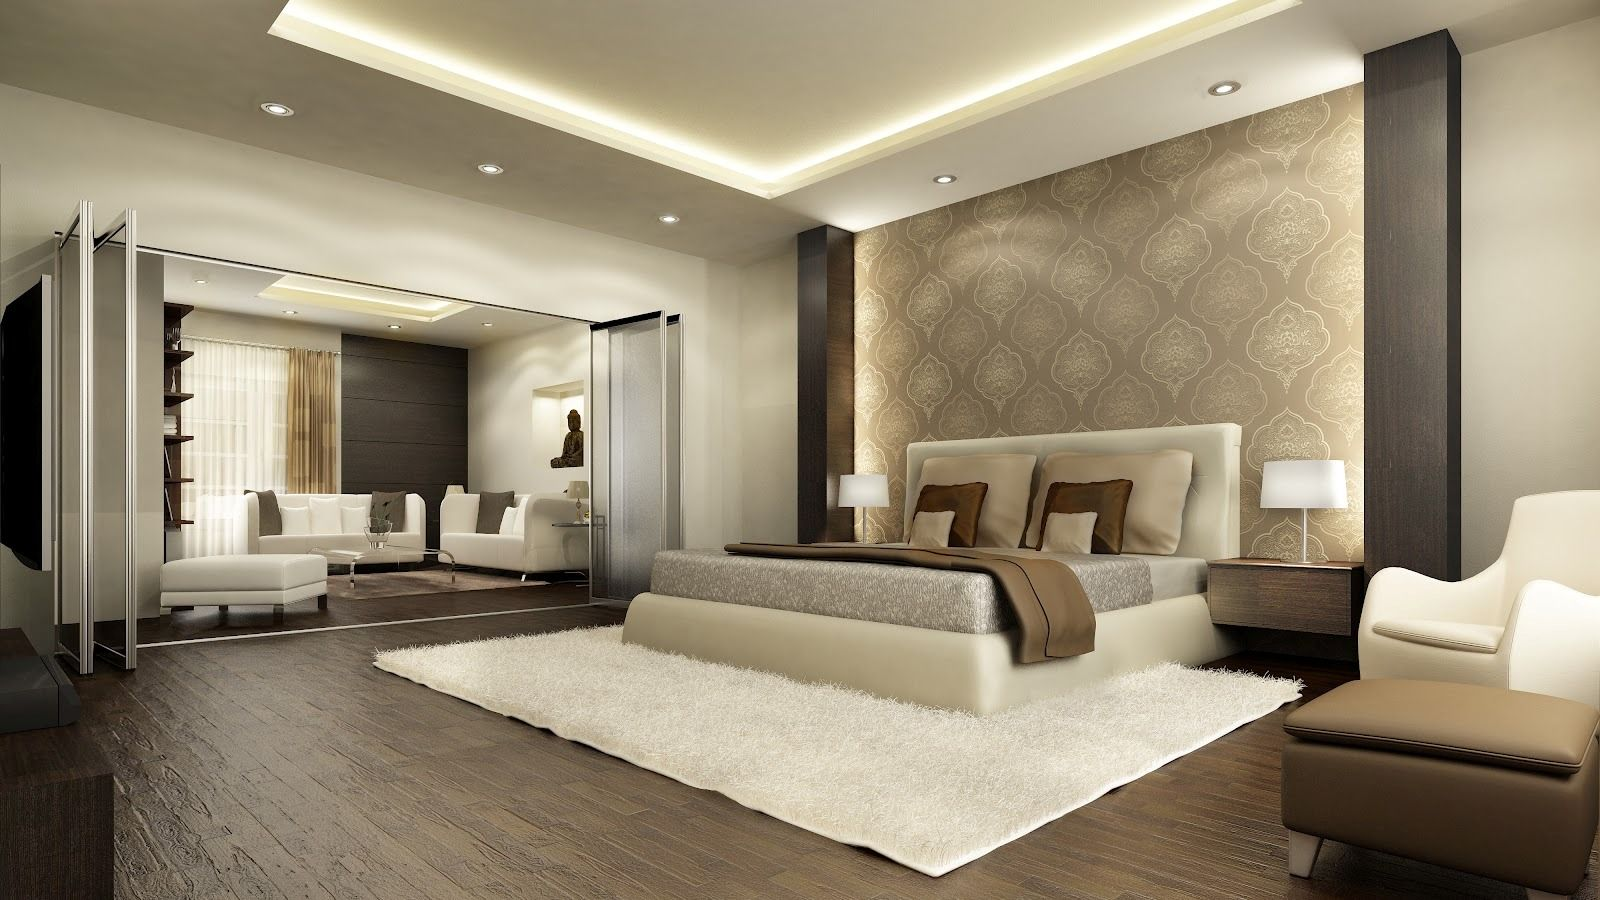 Modern Master Bedroom Design Ideas with Luxury Lamps White Bed ...